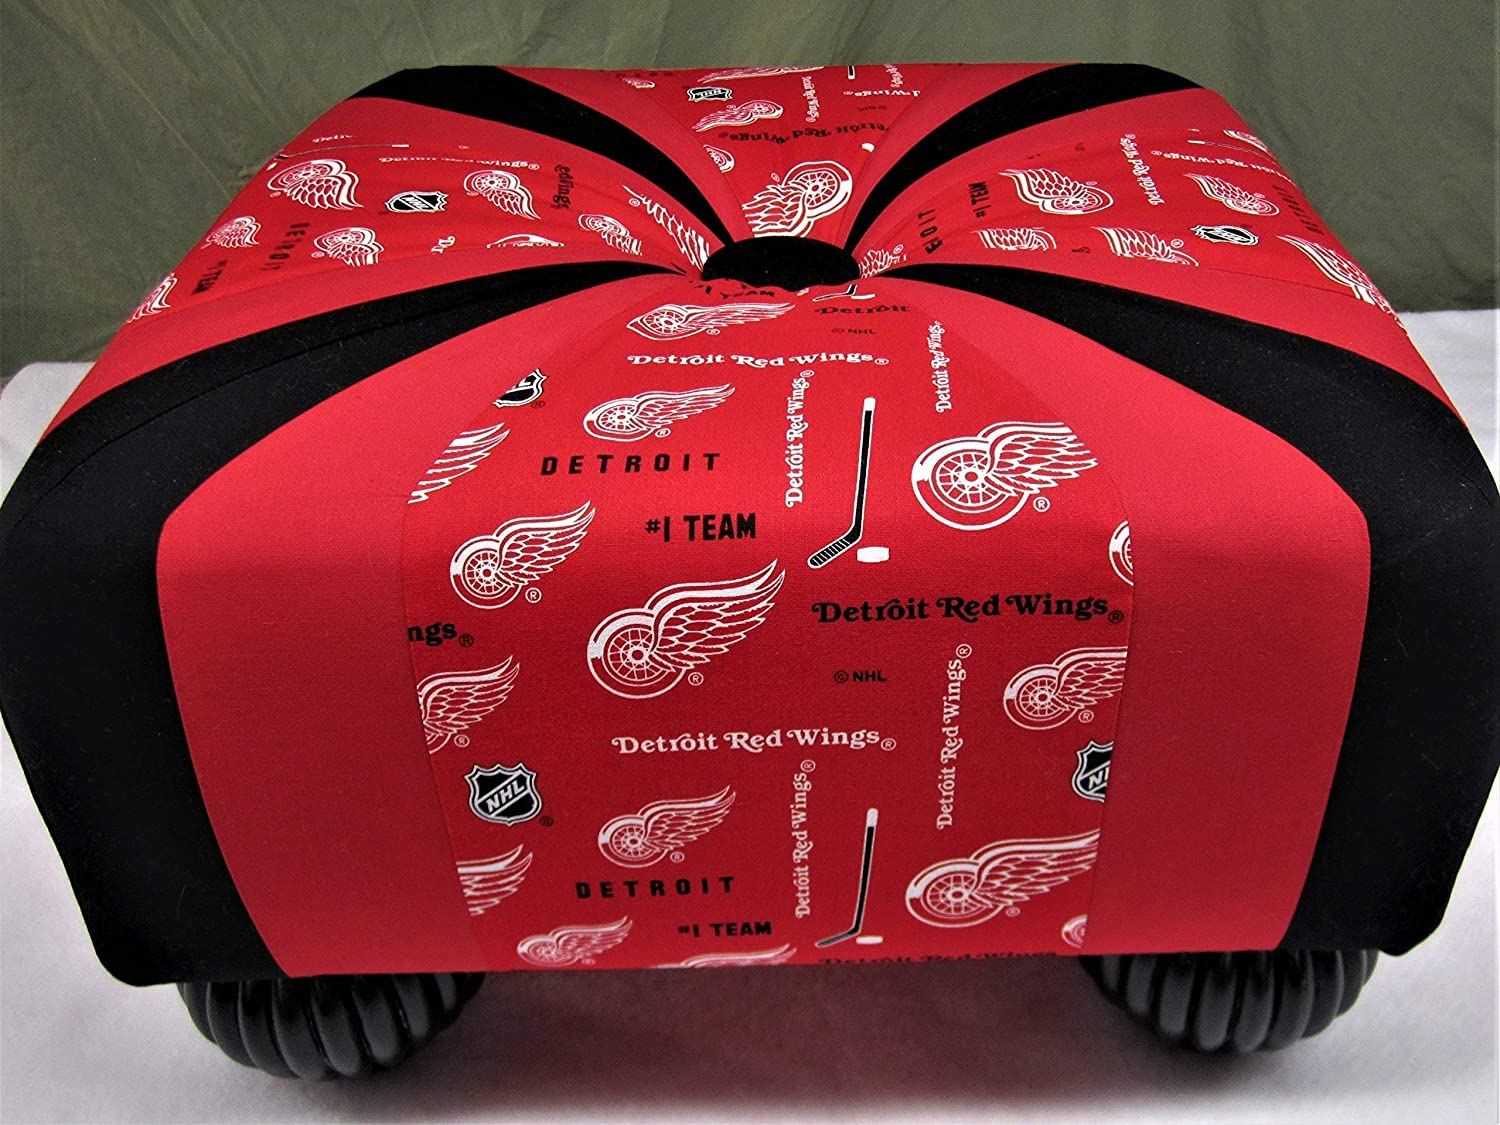 18 inch Handmade Square Red and Choice Footstool Ot Hockey Tuffet White Shipping included